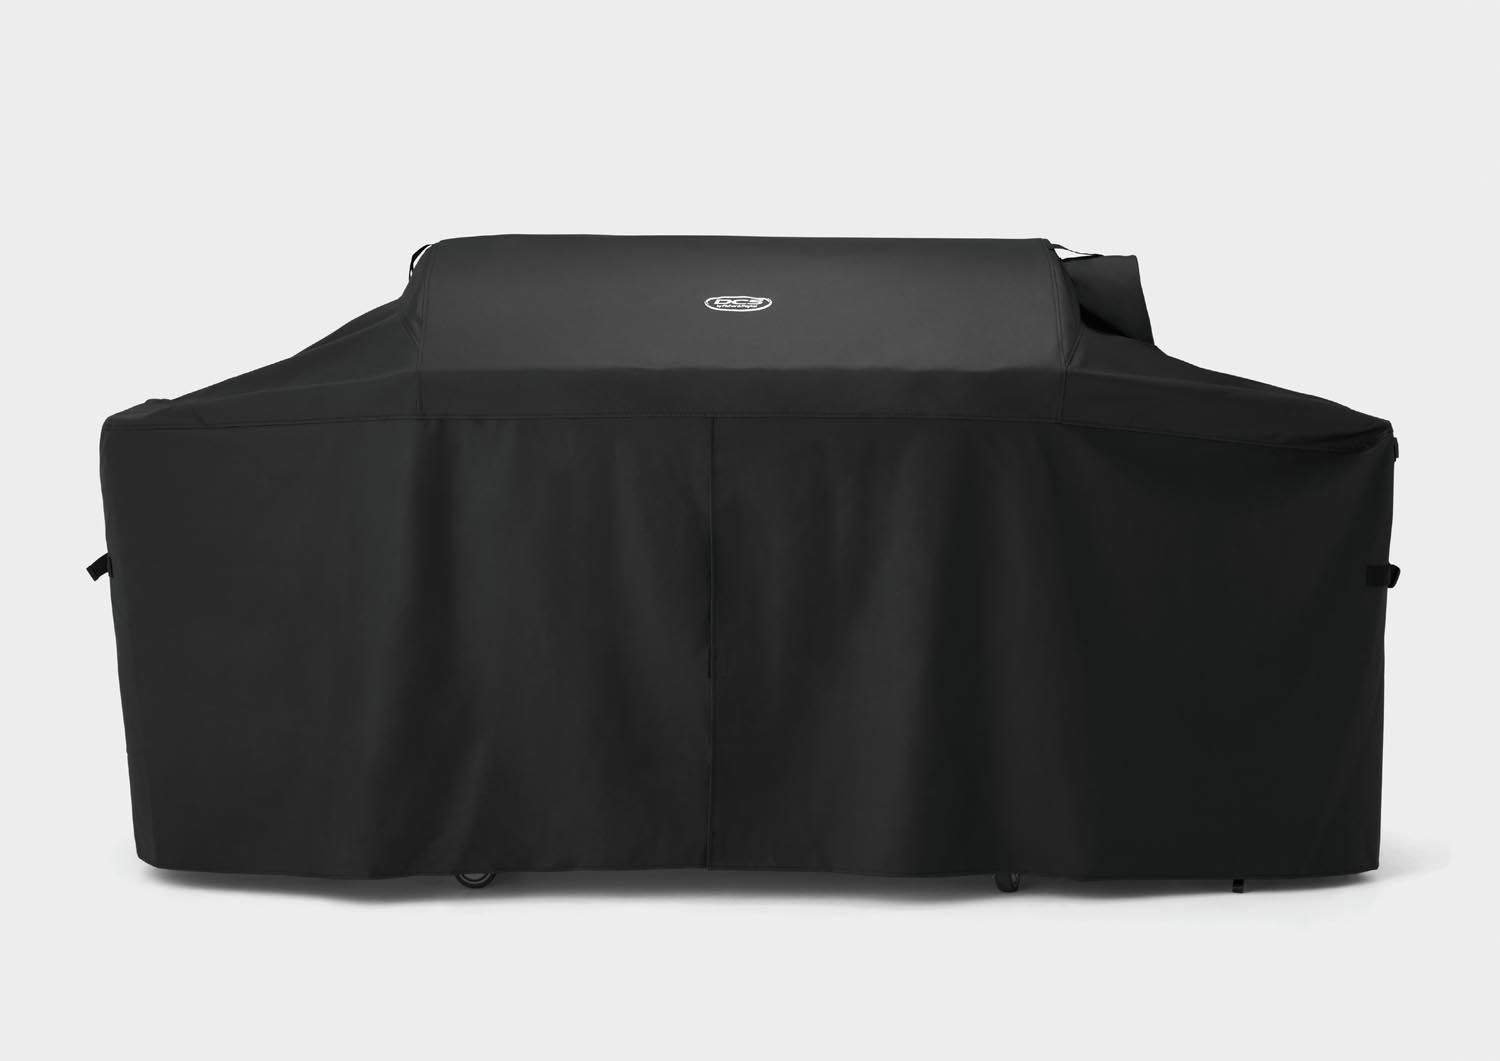 DCS Vinyl Cover for 36-Inch Freestanding Grill (71179) (ACC-36)